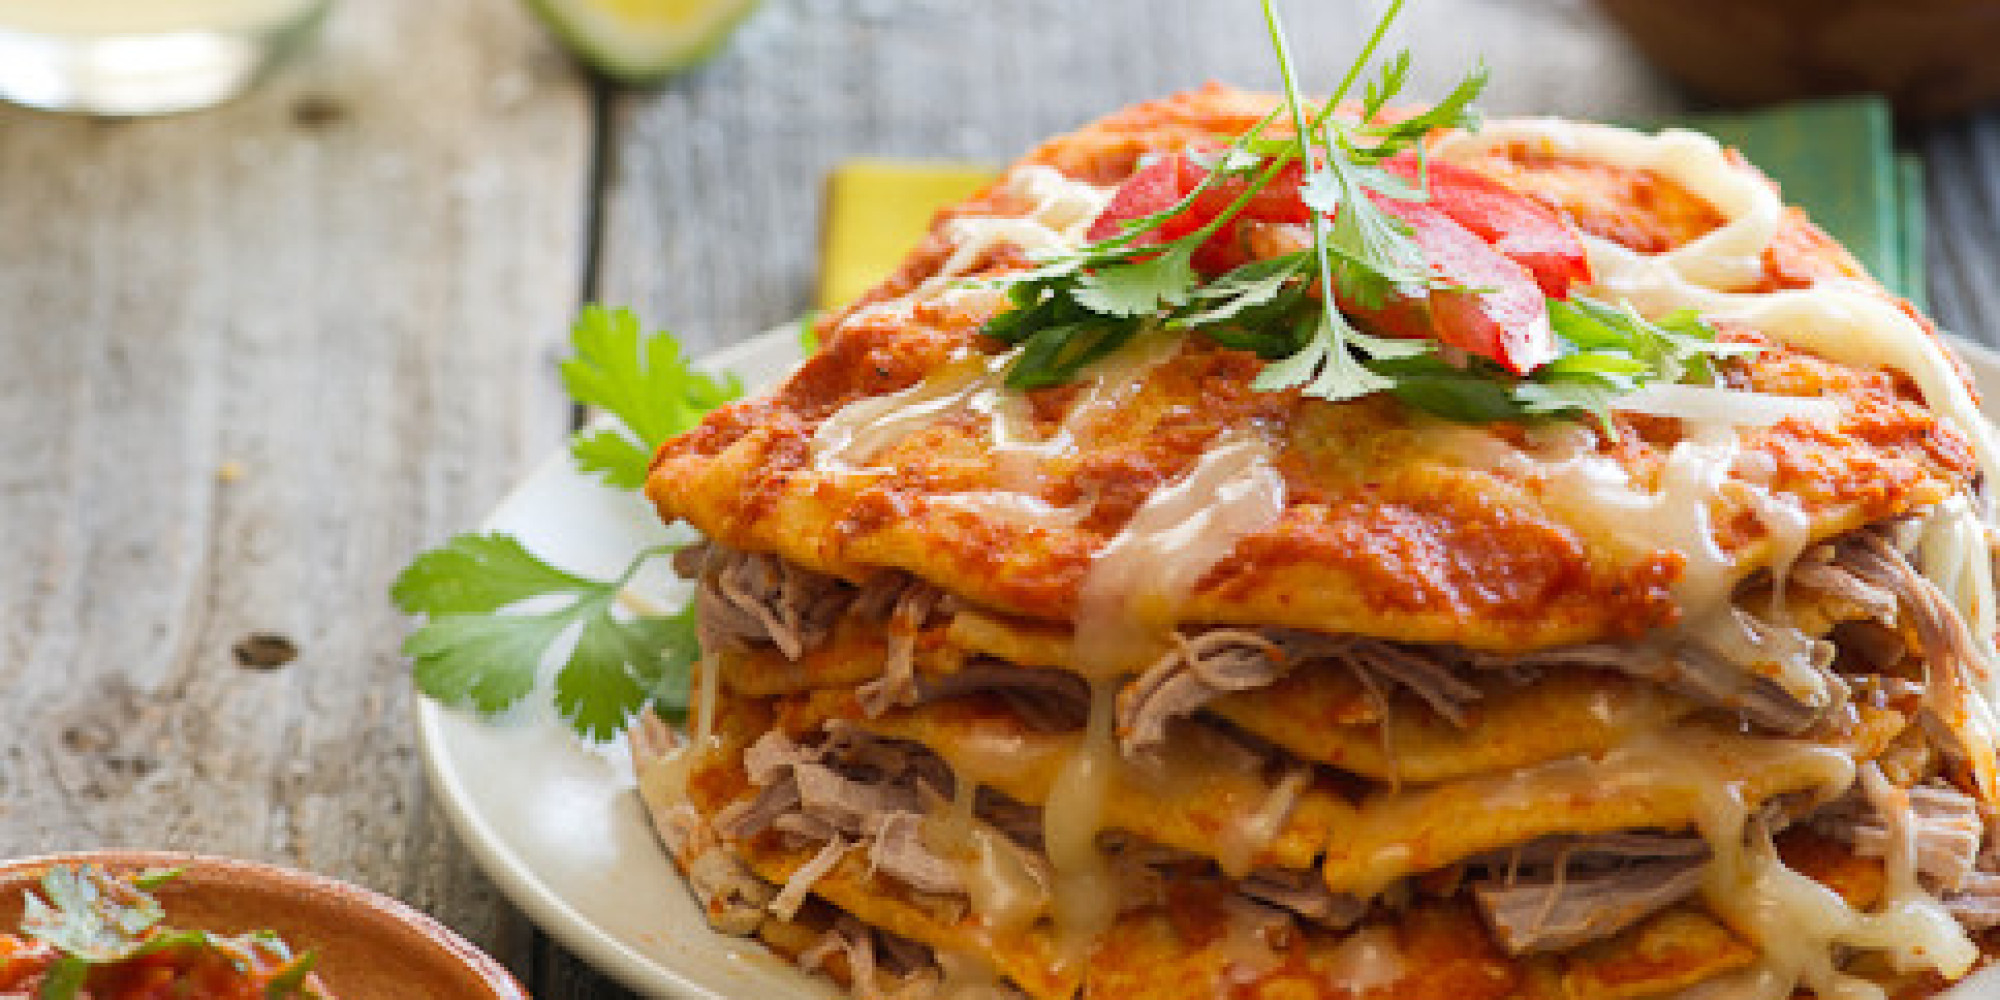 Mexican Food Recipes With Pictures  51 Our Favorite Mexican Recipes For Tacos Enchiladas